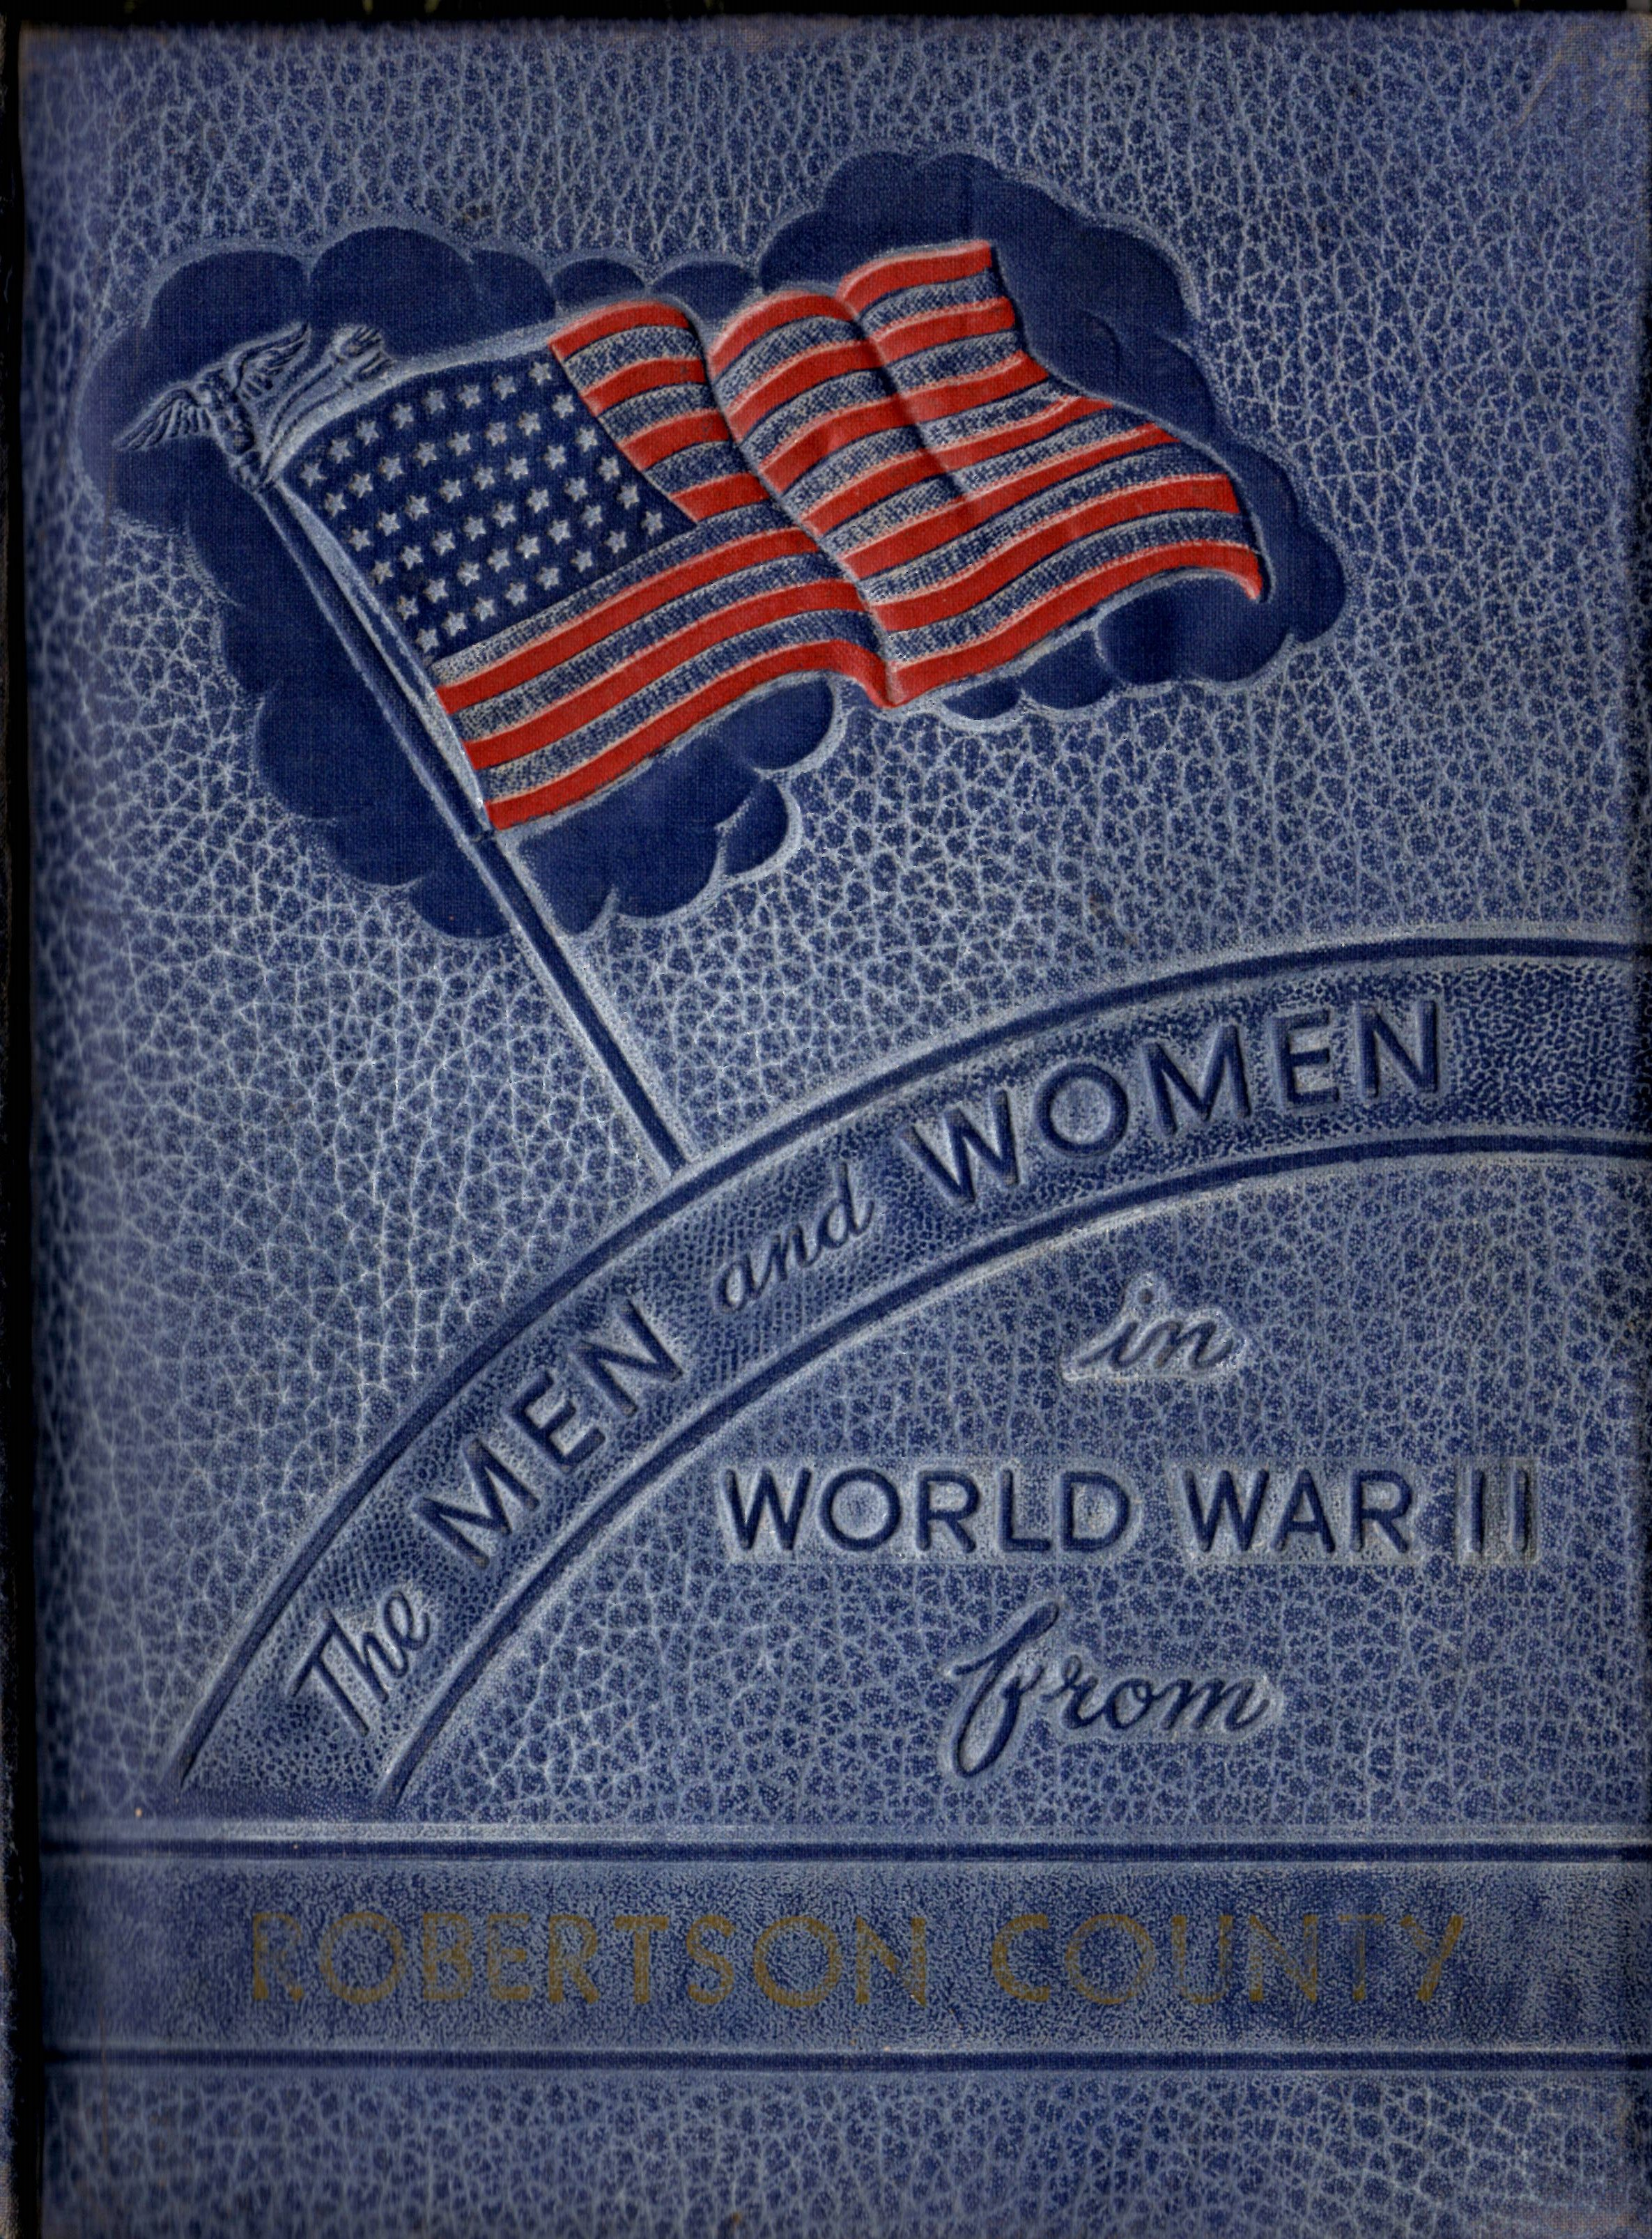 Men and women in the Armed Forces from Robertson County Texas WW2 WWII World War Two 2 II !! 11